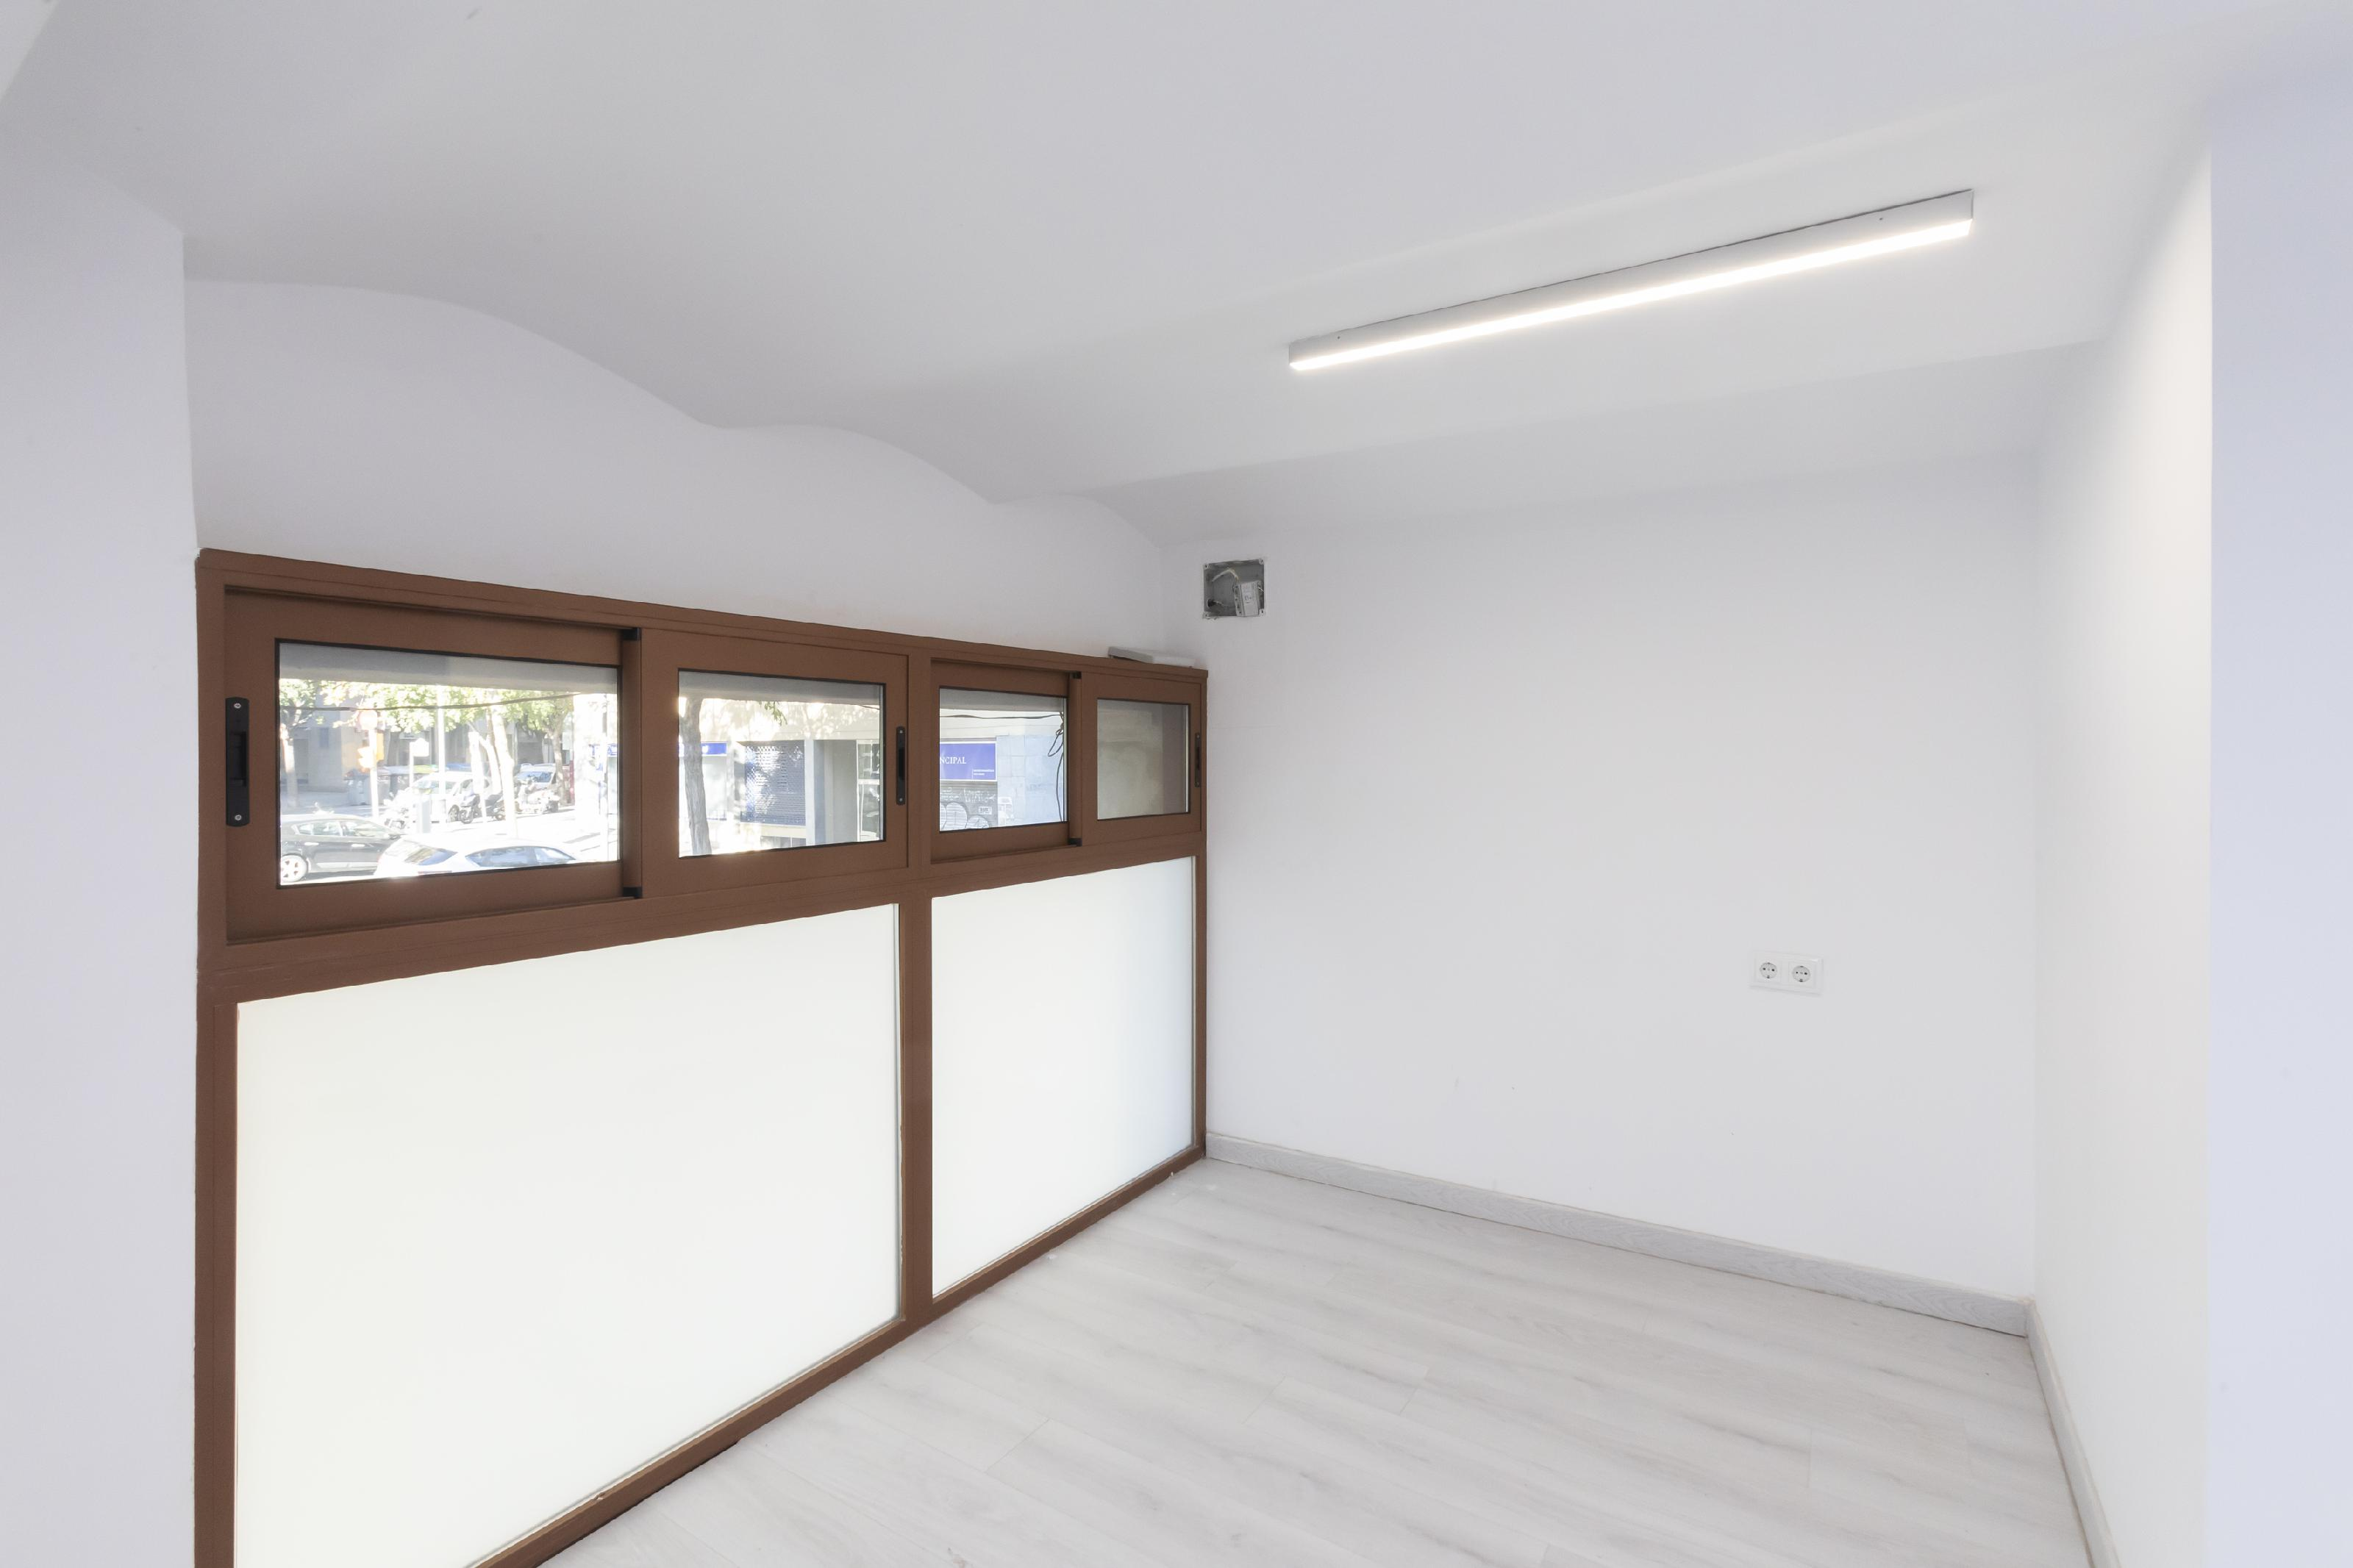 242978 Flat for sale in Gràcia, Camp Grassot and Gràcia Nova 15